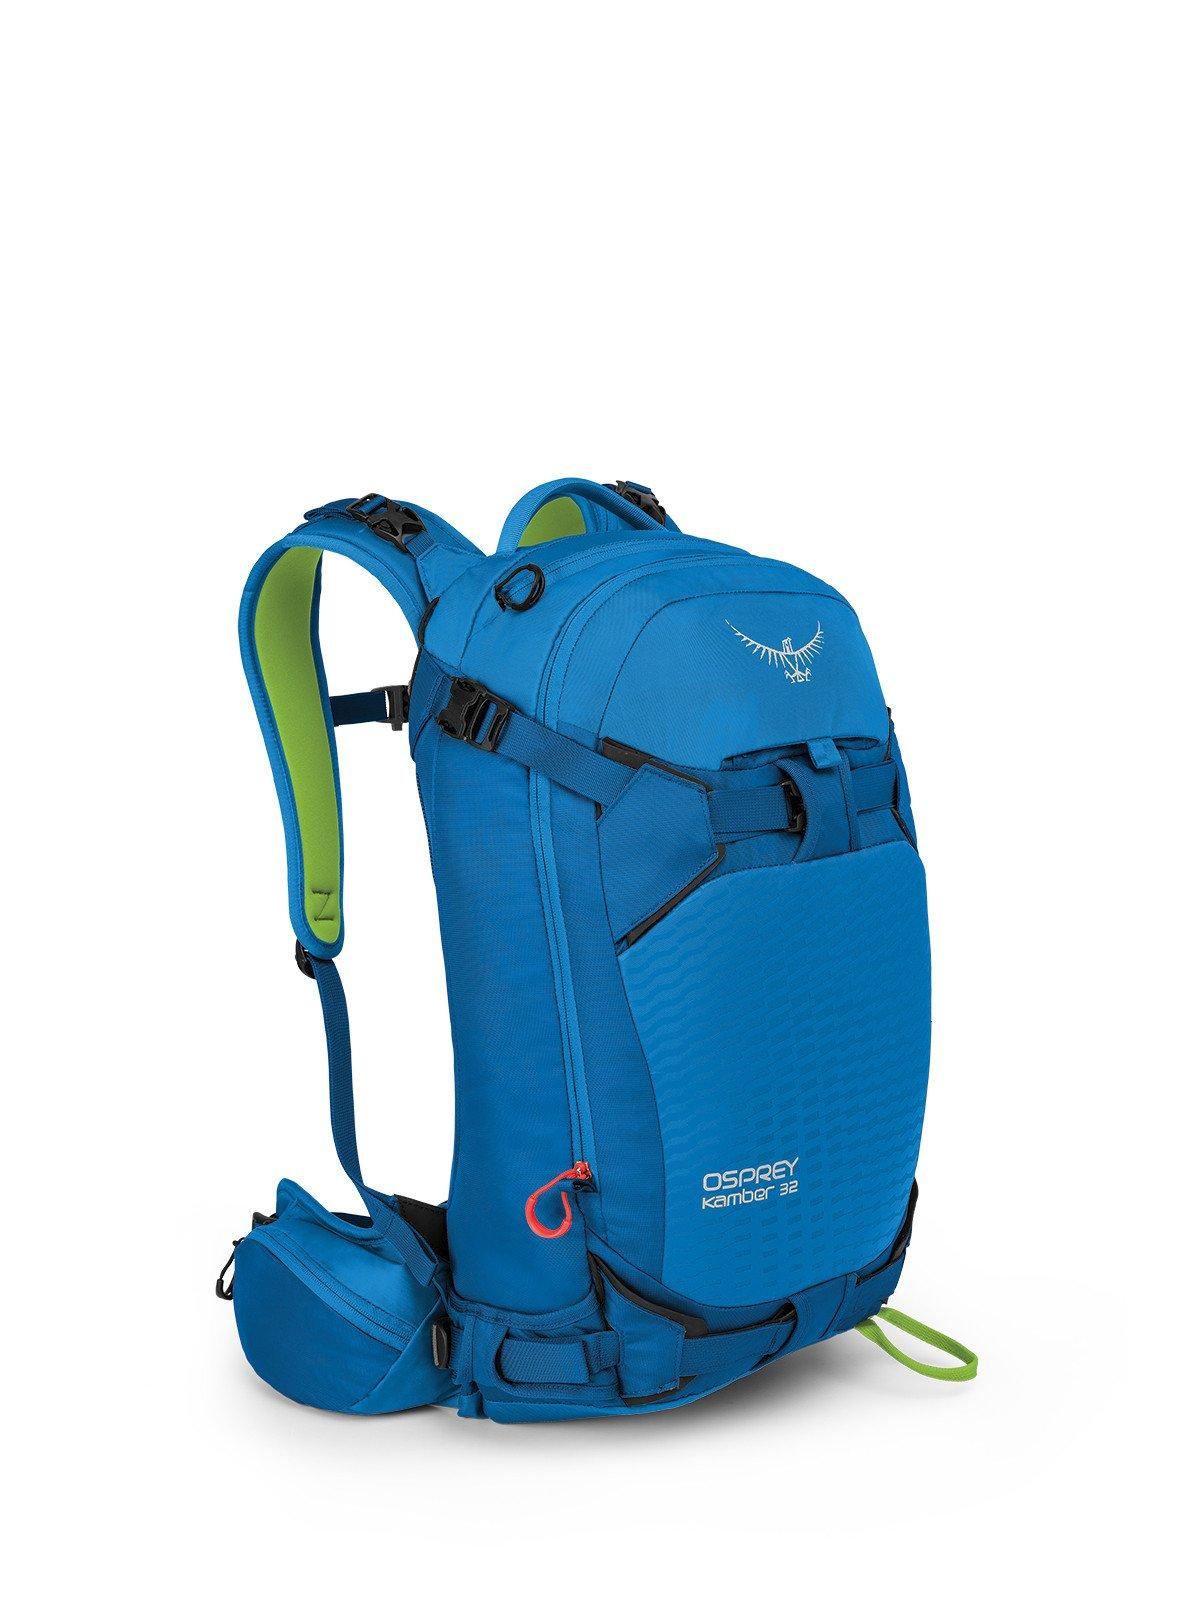 Osprey Kamber 32 in Cold Blue